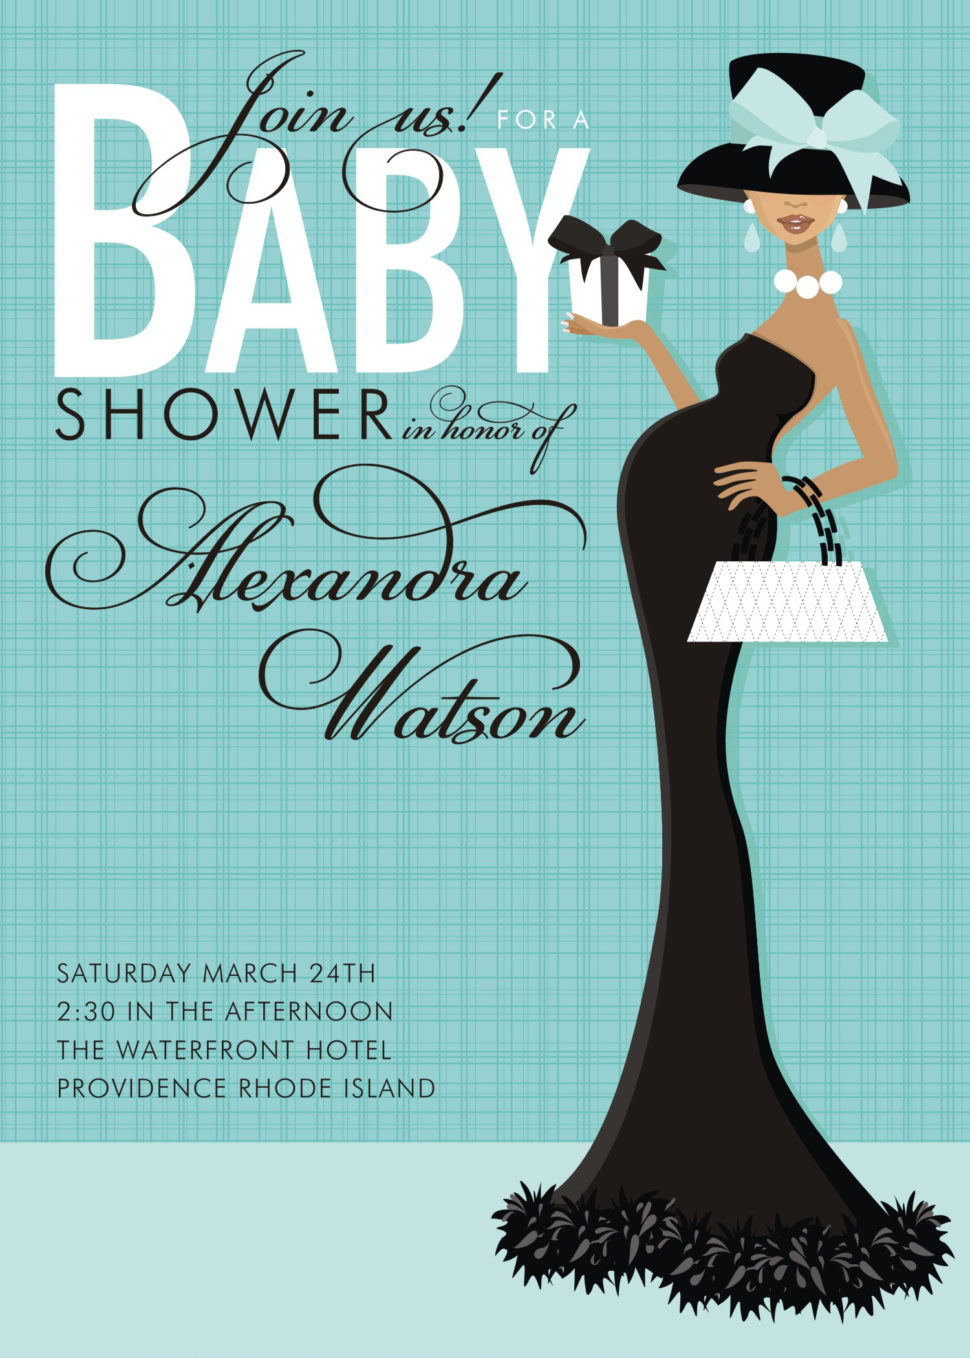 Medium Size of Baby Shower:sturdy Baby Shower Invitation Template Image Concepts Baby Shower Invitation Template As Well As Baby Shower Host With Baby Shower Stuff Plus Baby Shower Para Niño Together With Diy Baby Shower Invitations